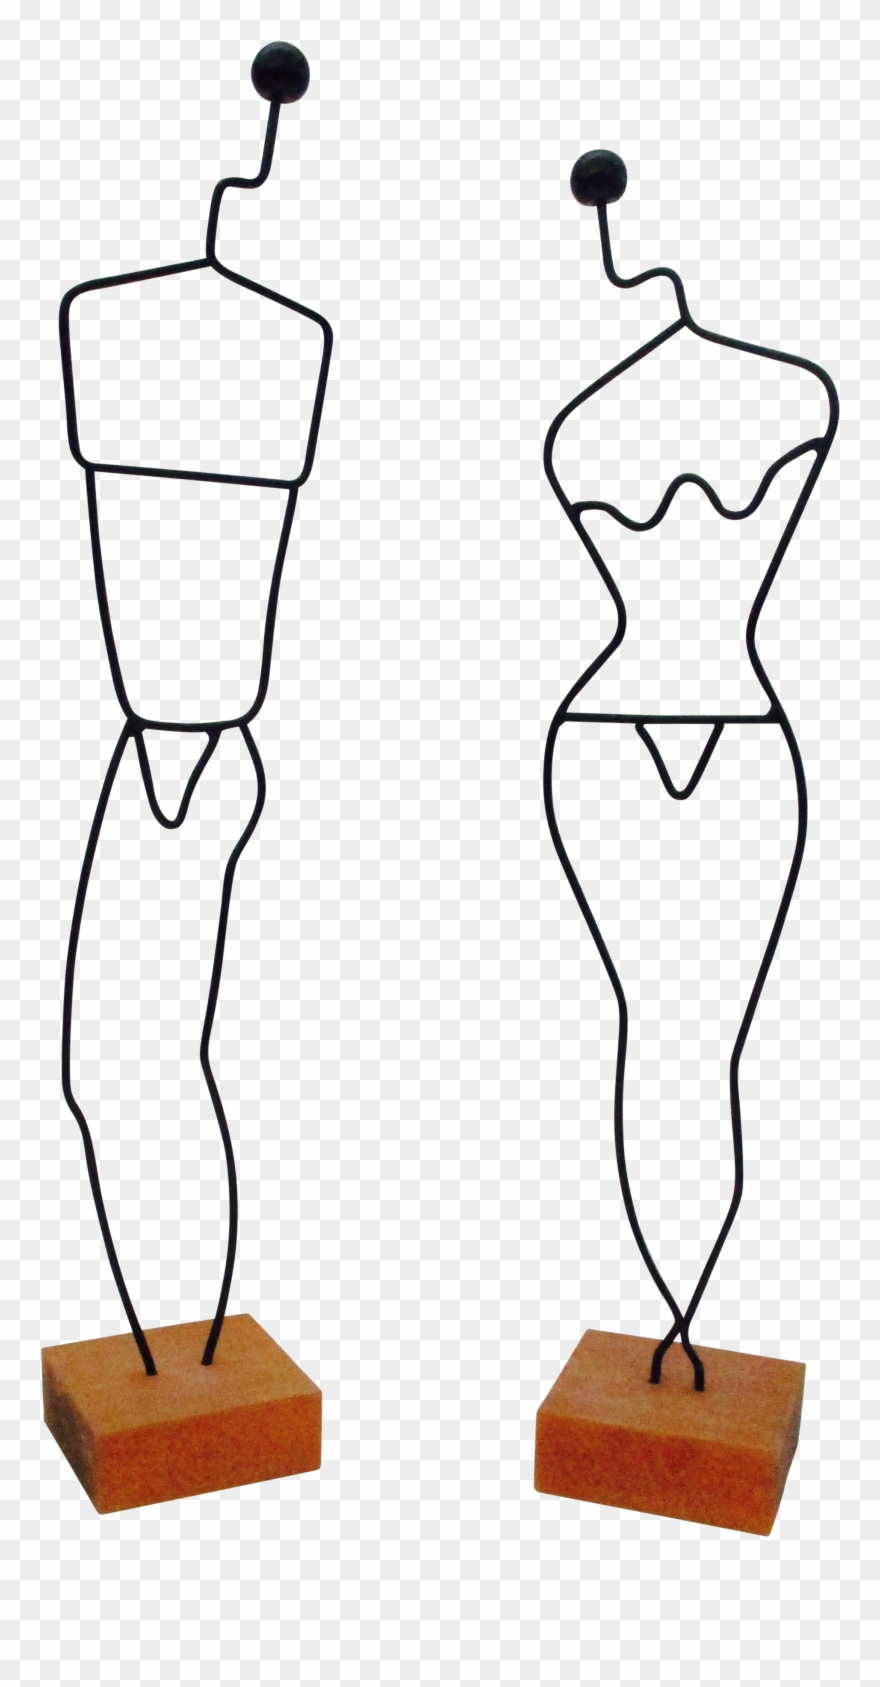 Danish modern clipart svg freeuse stock Danish Modern Wire Mannequin - Sales Clipart (#2036602) - PinClipart svg freeuse stock